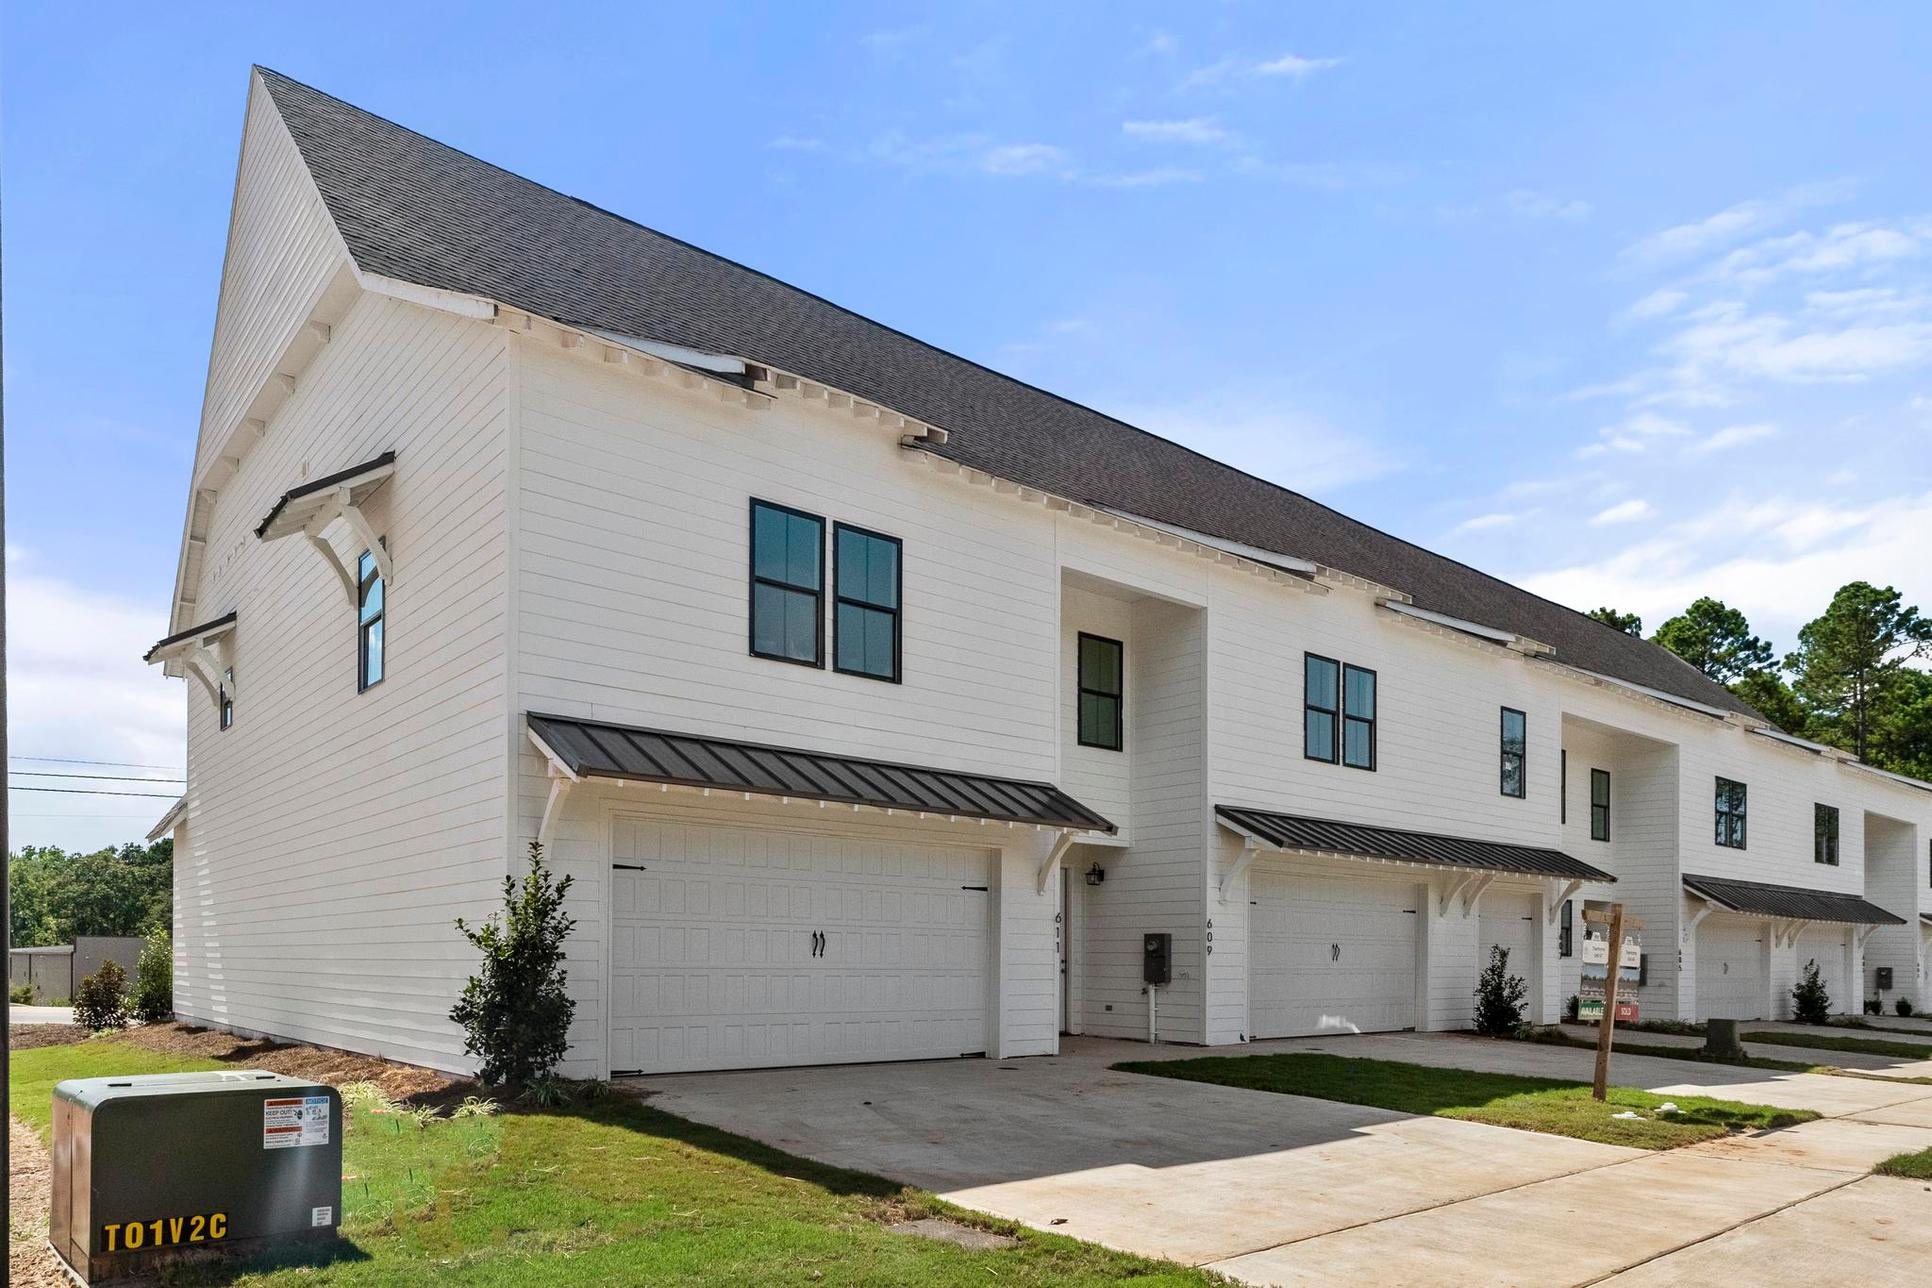 The Townhomes at Owens Crossing:The Townhomes at Owens Crossing